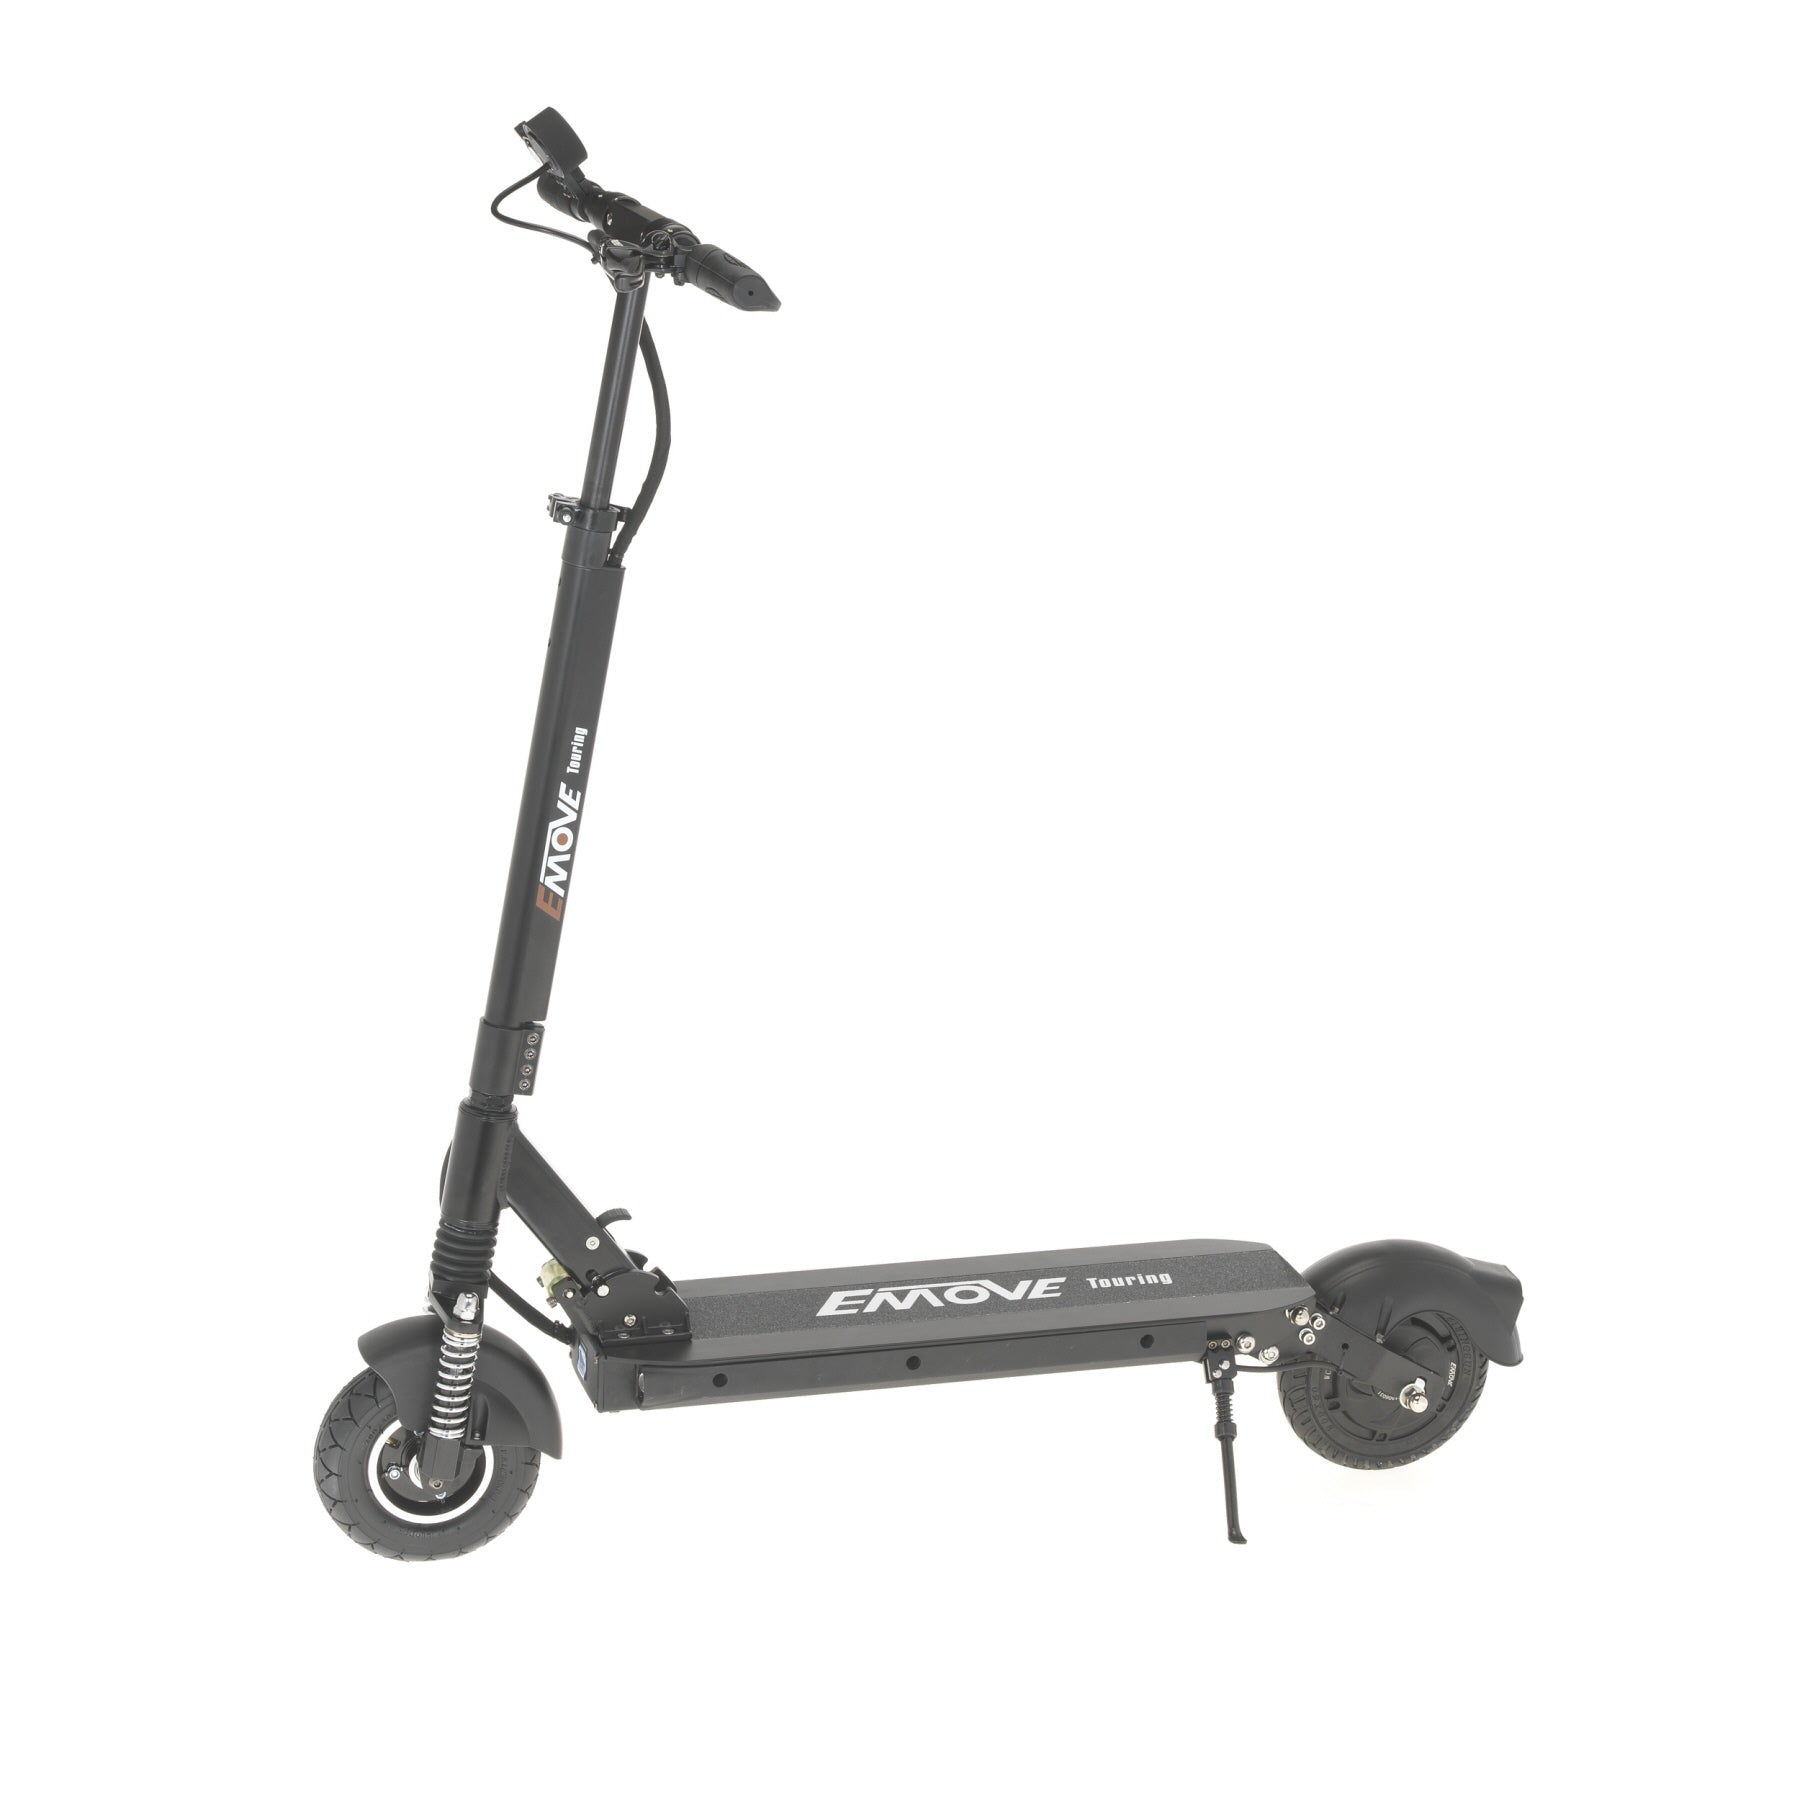 EMOVE Touring Electric Scooter Summer 2019 Version Black with Front Dual Suspensions